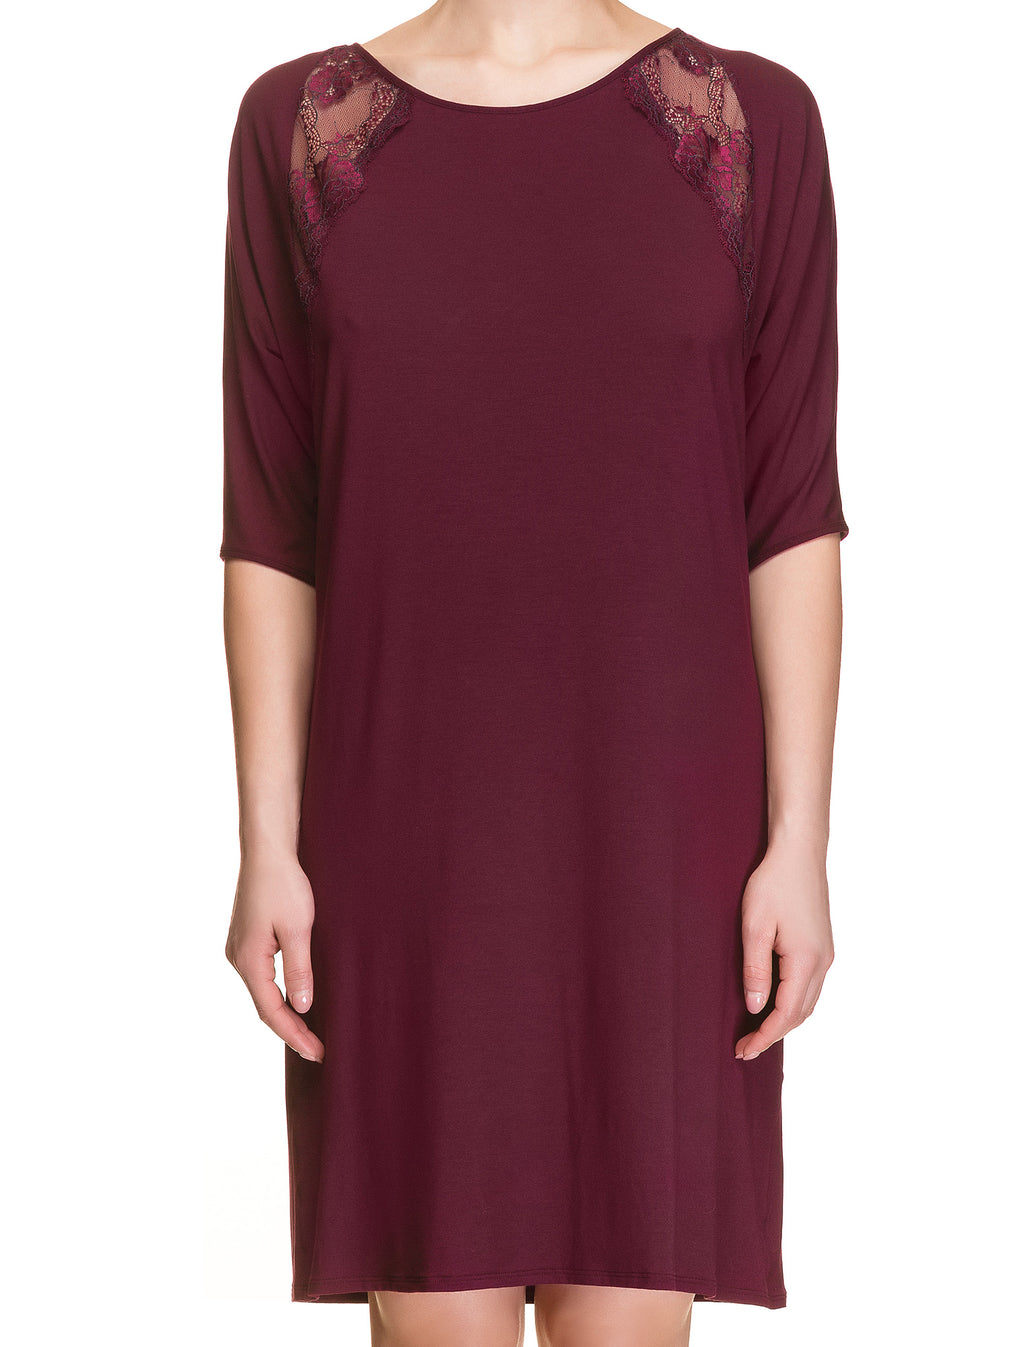 Lauma, Burgundy Viscose Night Dress, On Model Front, 29H92